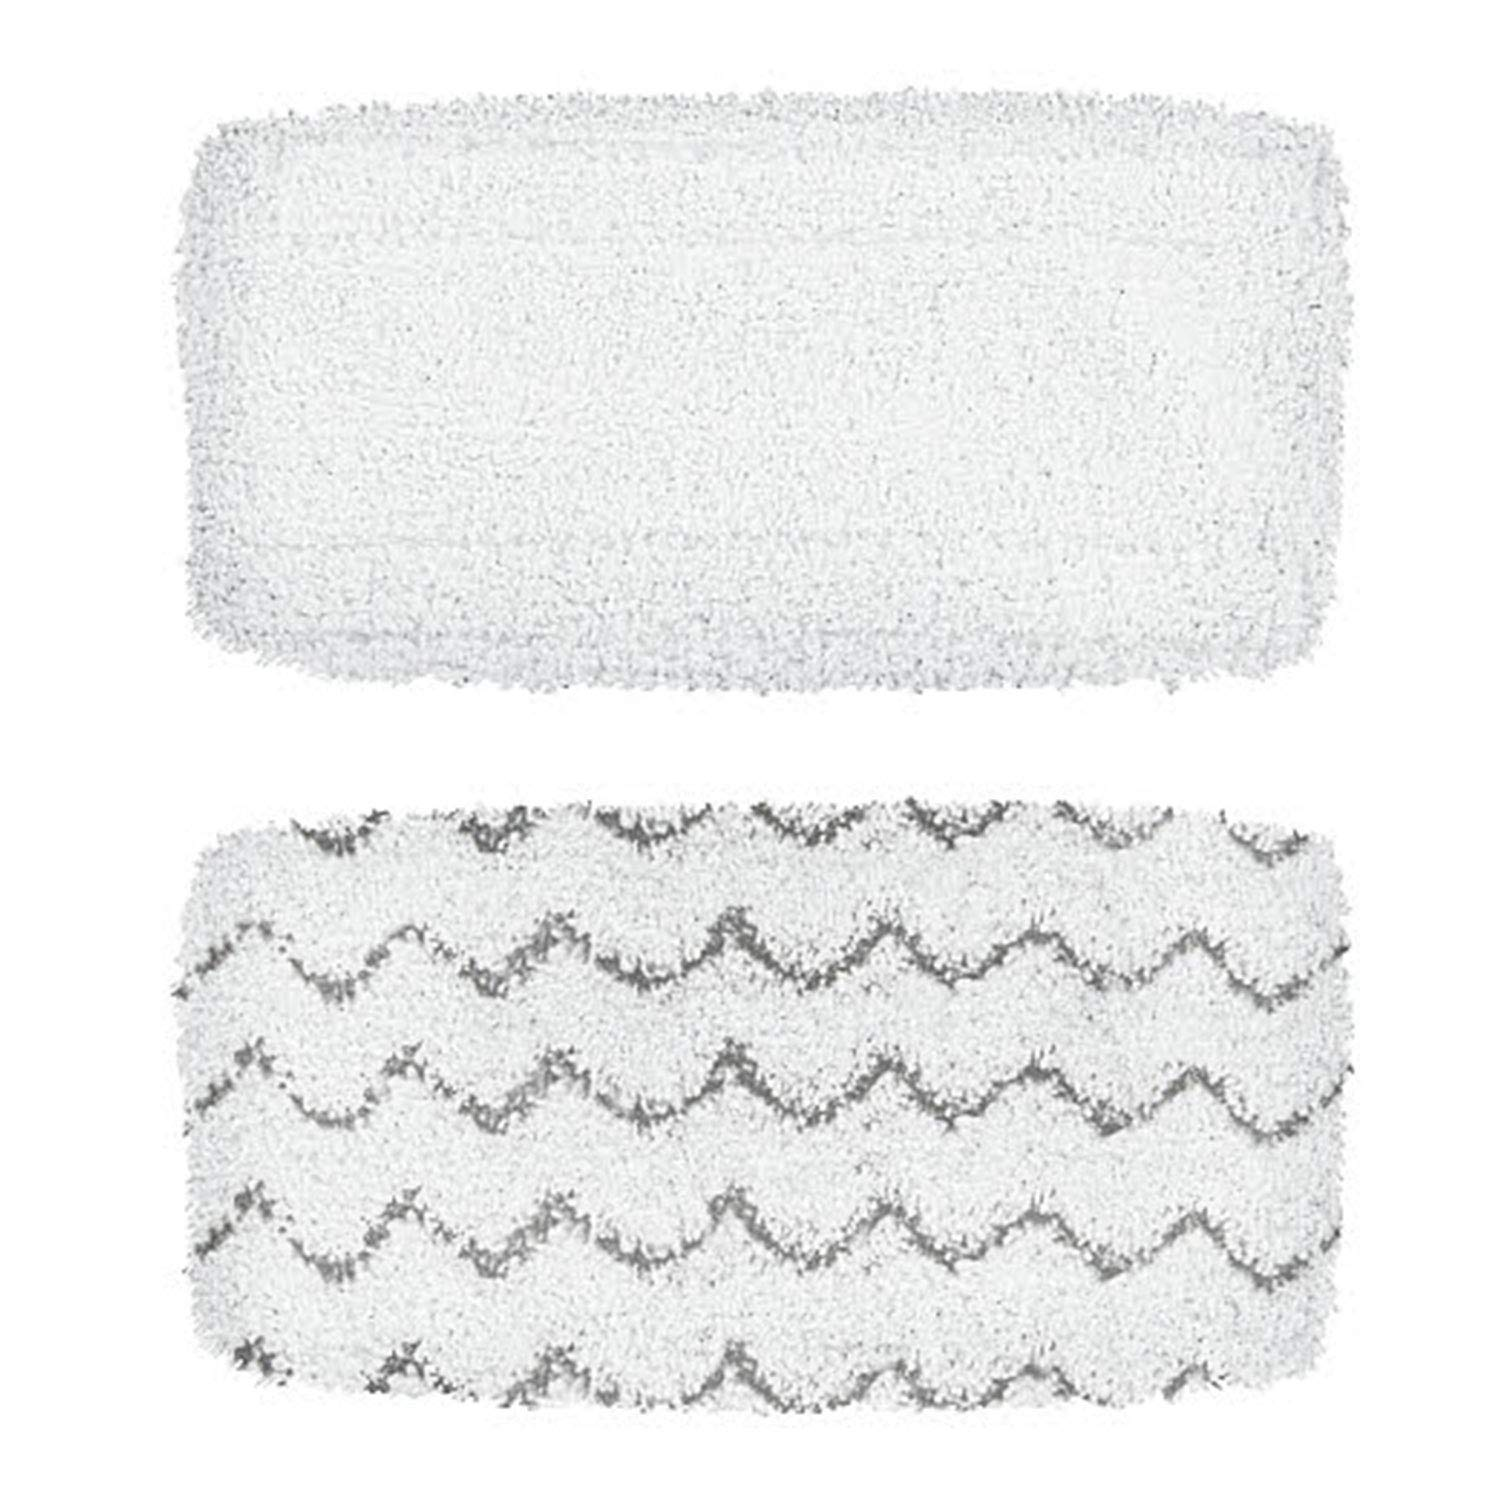 BISSELL Vac & Steam Mop Pads | Replacement Mop Pad For BISSELL Vac & Steam | 1 Delicate Pad, 1 Scrubbing Pad | 1252